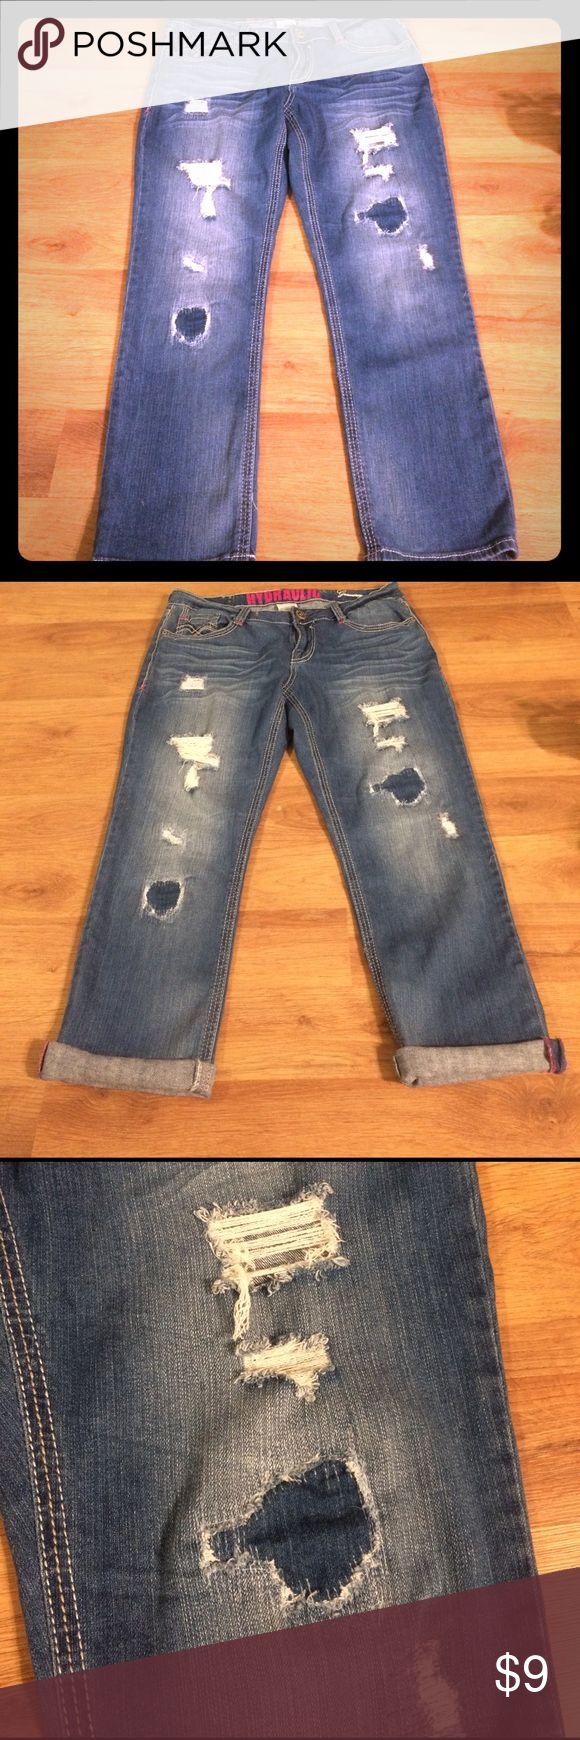 """Hydraulic Gramercy Cropped Distressed Jeans Hydraulic brand """"gramercy"""" cropped jeans, size 7/8. They can be cuffed for capri length or worn regular at ankles. They have distressing on front and pink thread accents. Hydraulic Jeans Ankle & Cropped"""